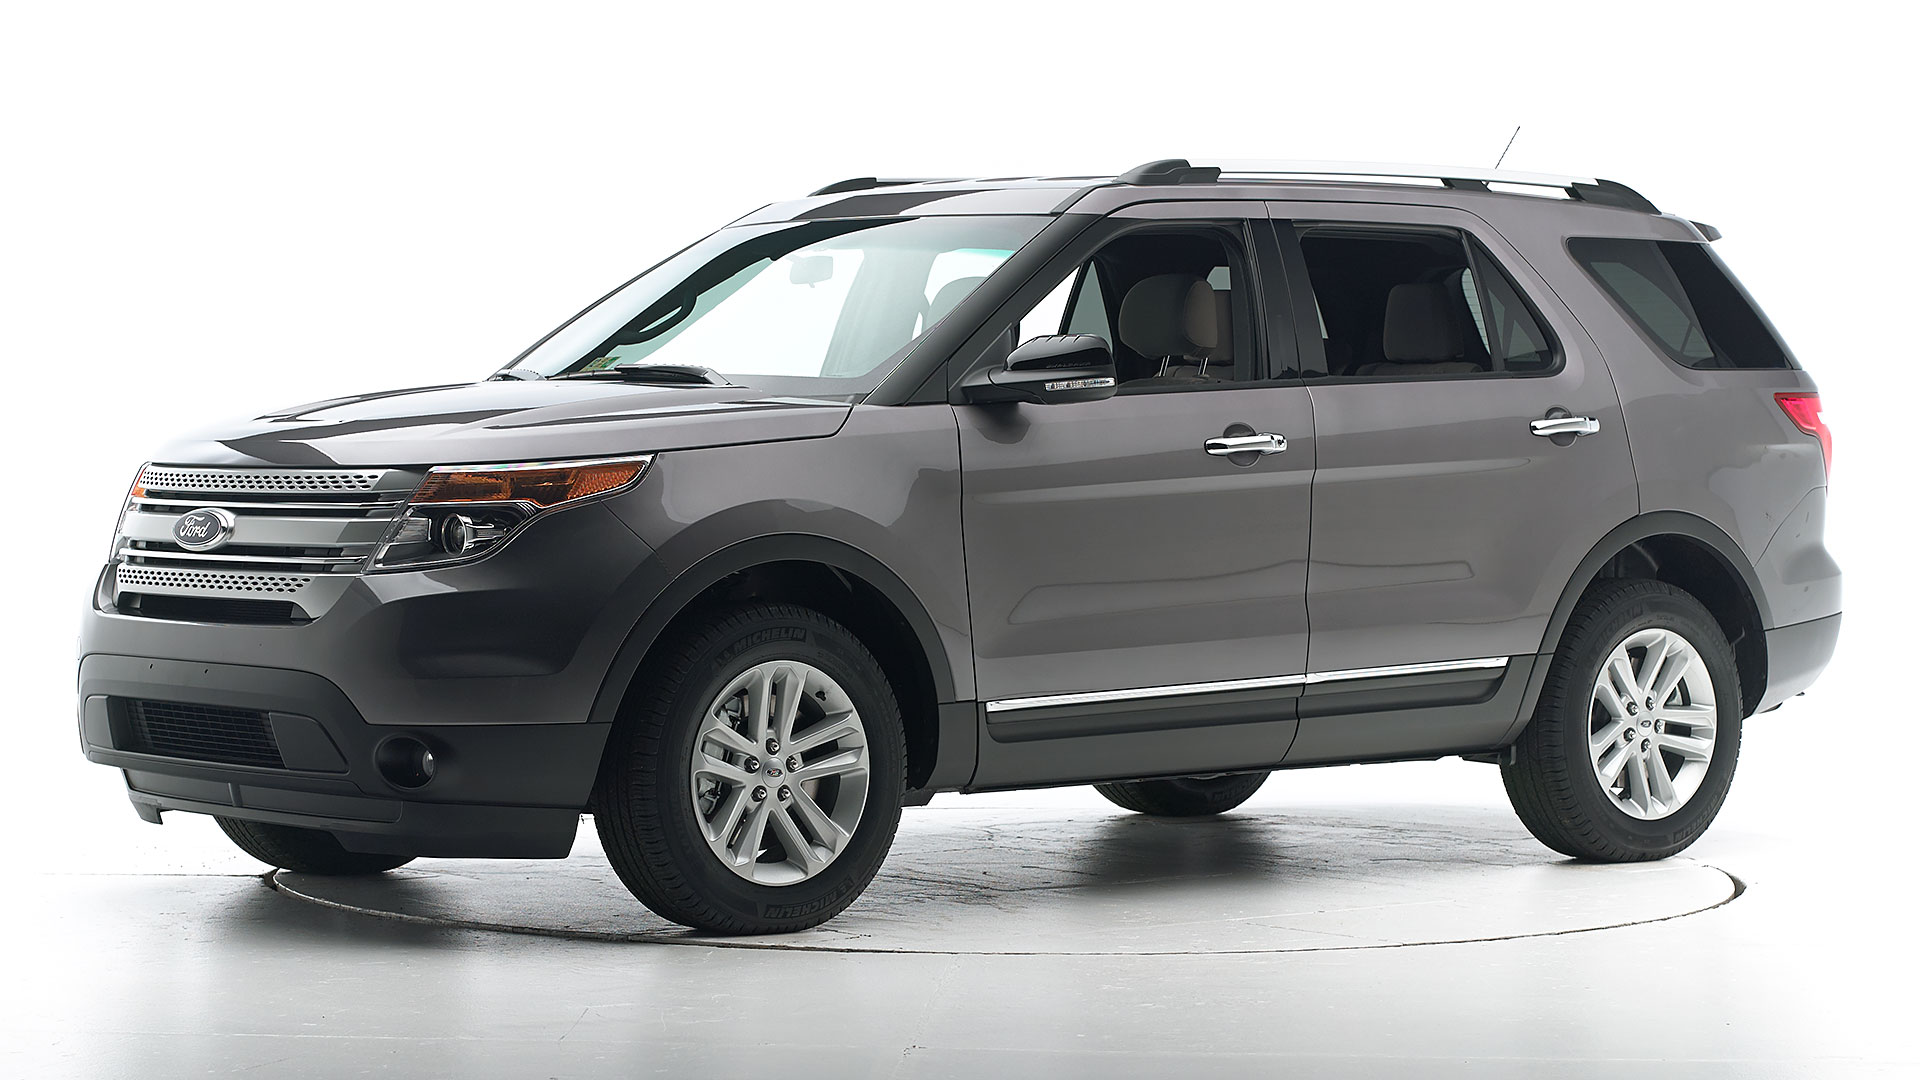 2015 Ford Explorer 4-door SUV